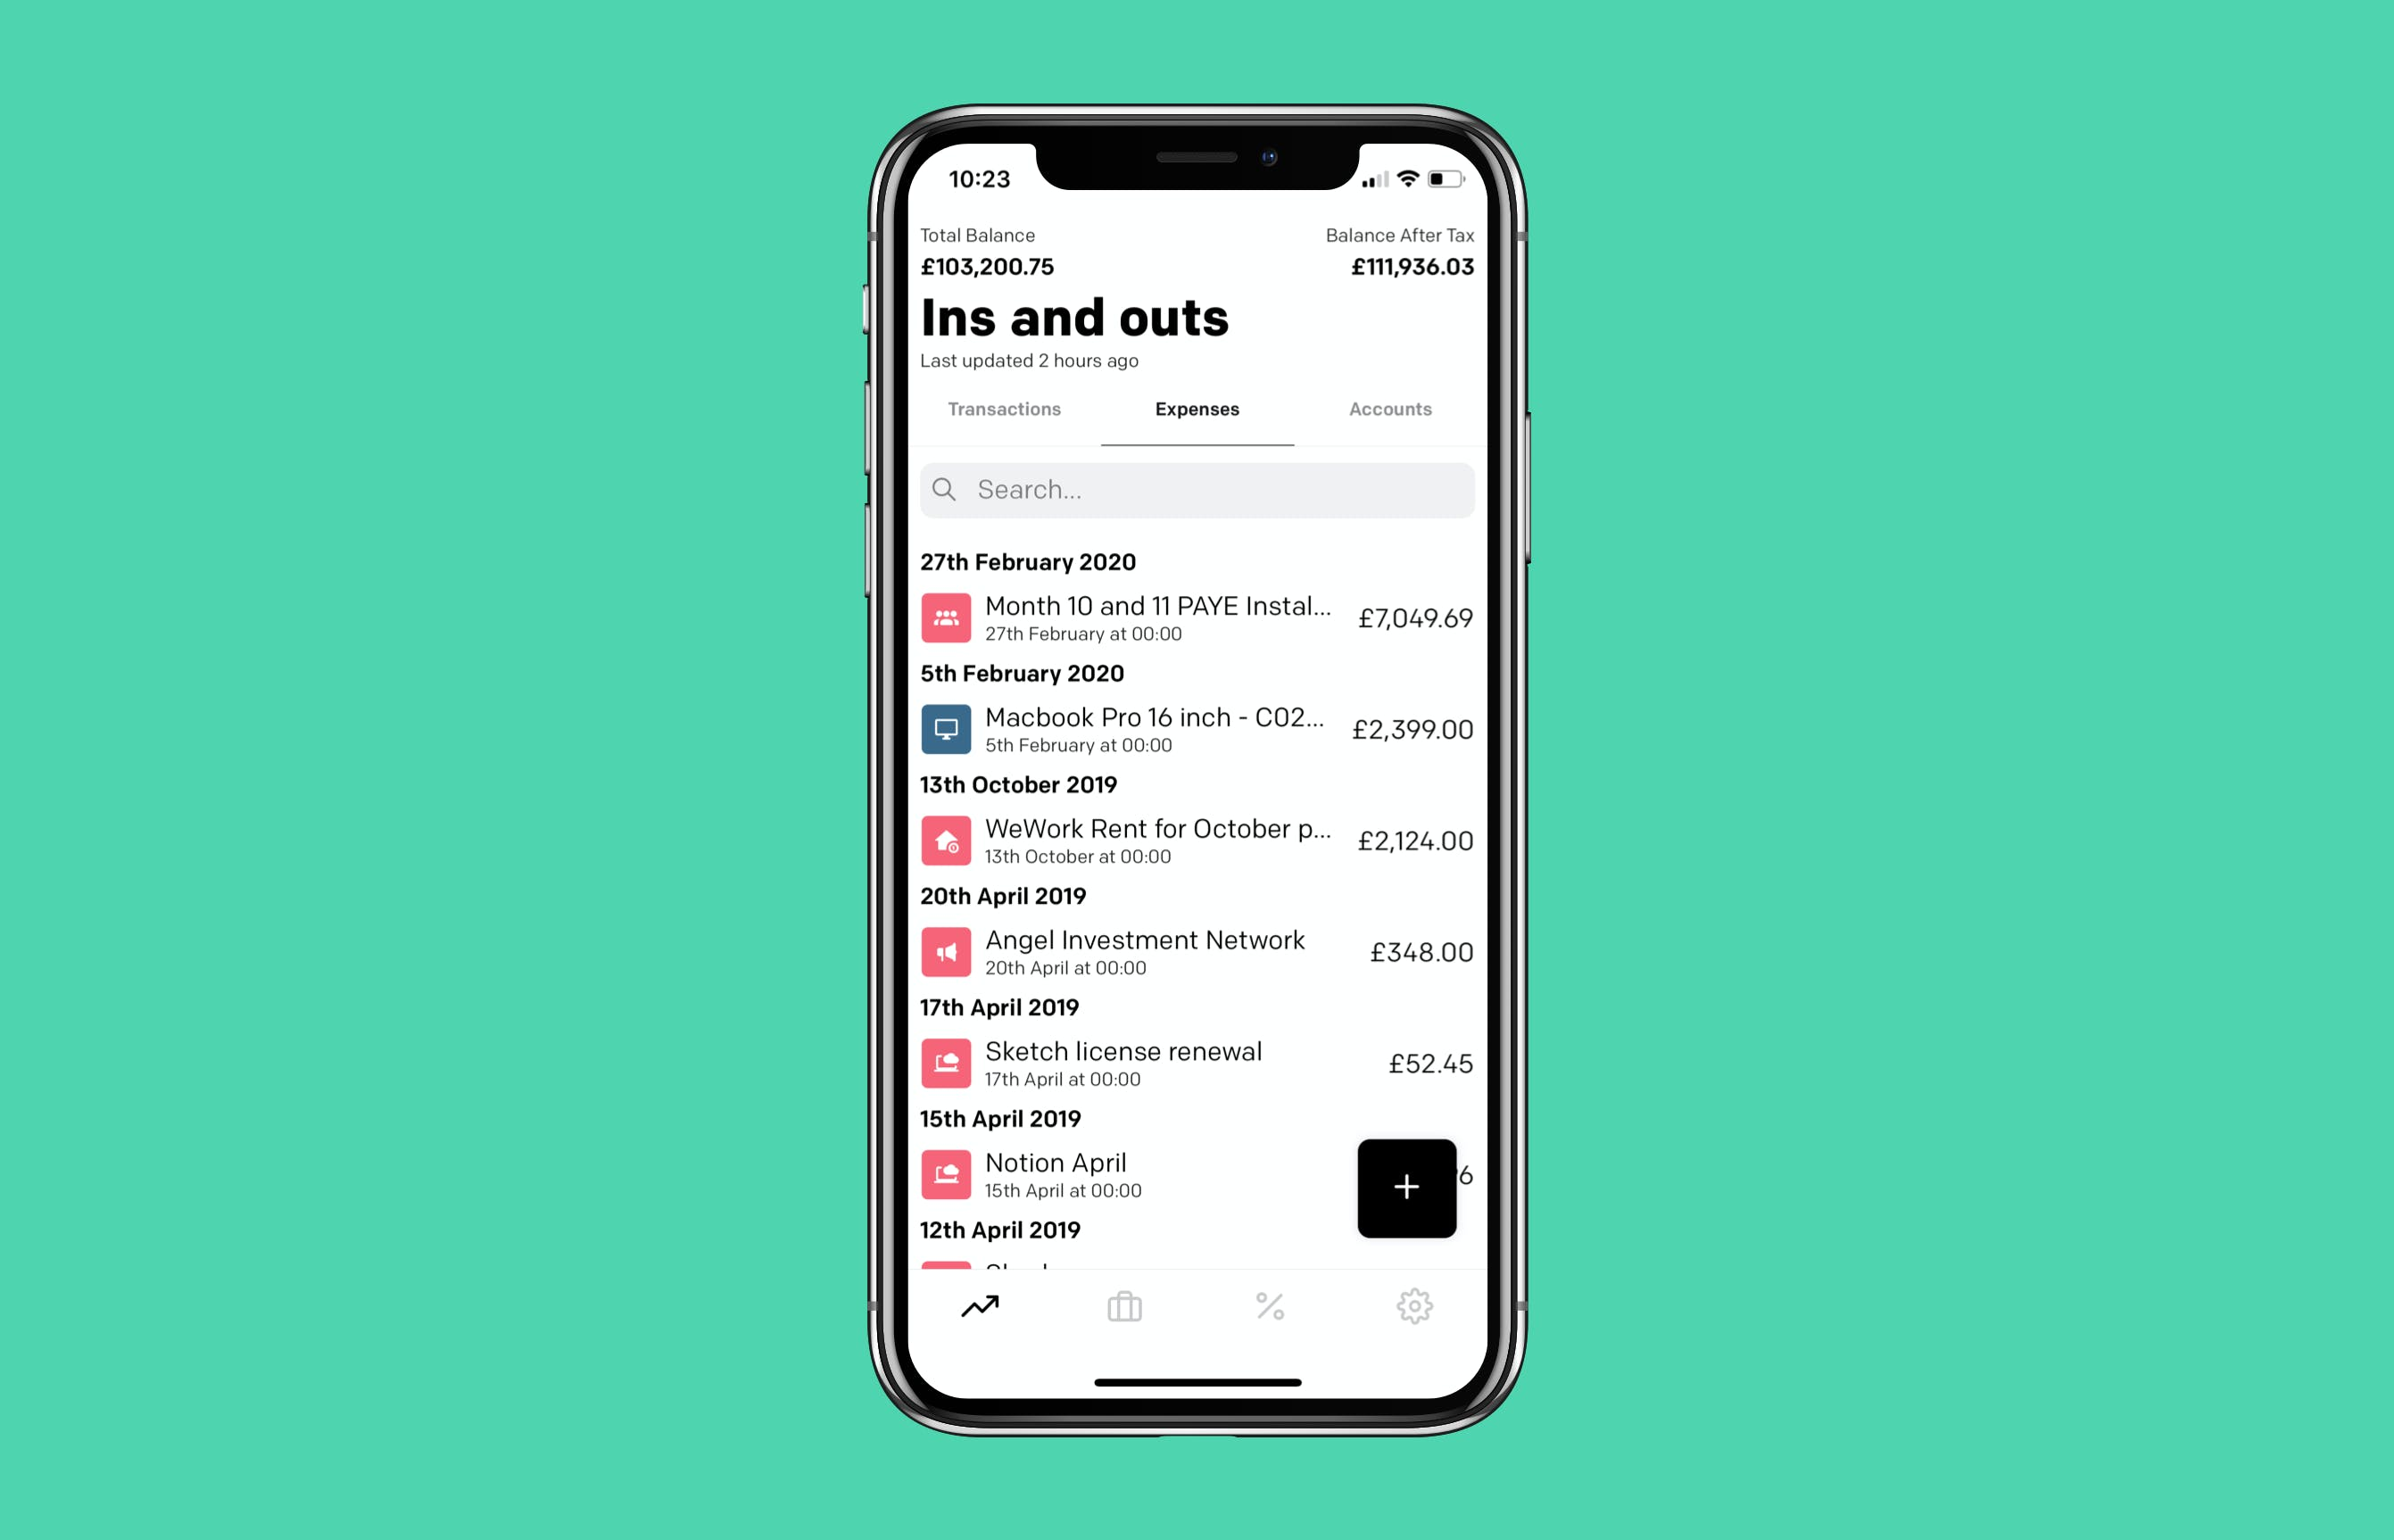 Expenses separate from feed on mobile device